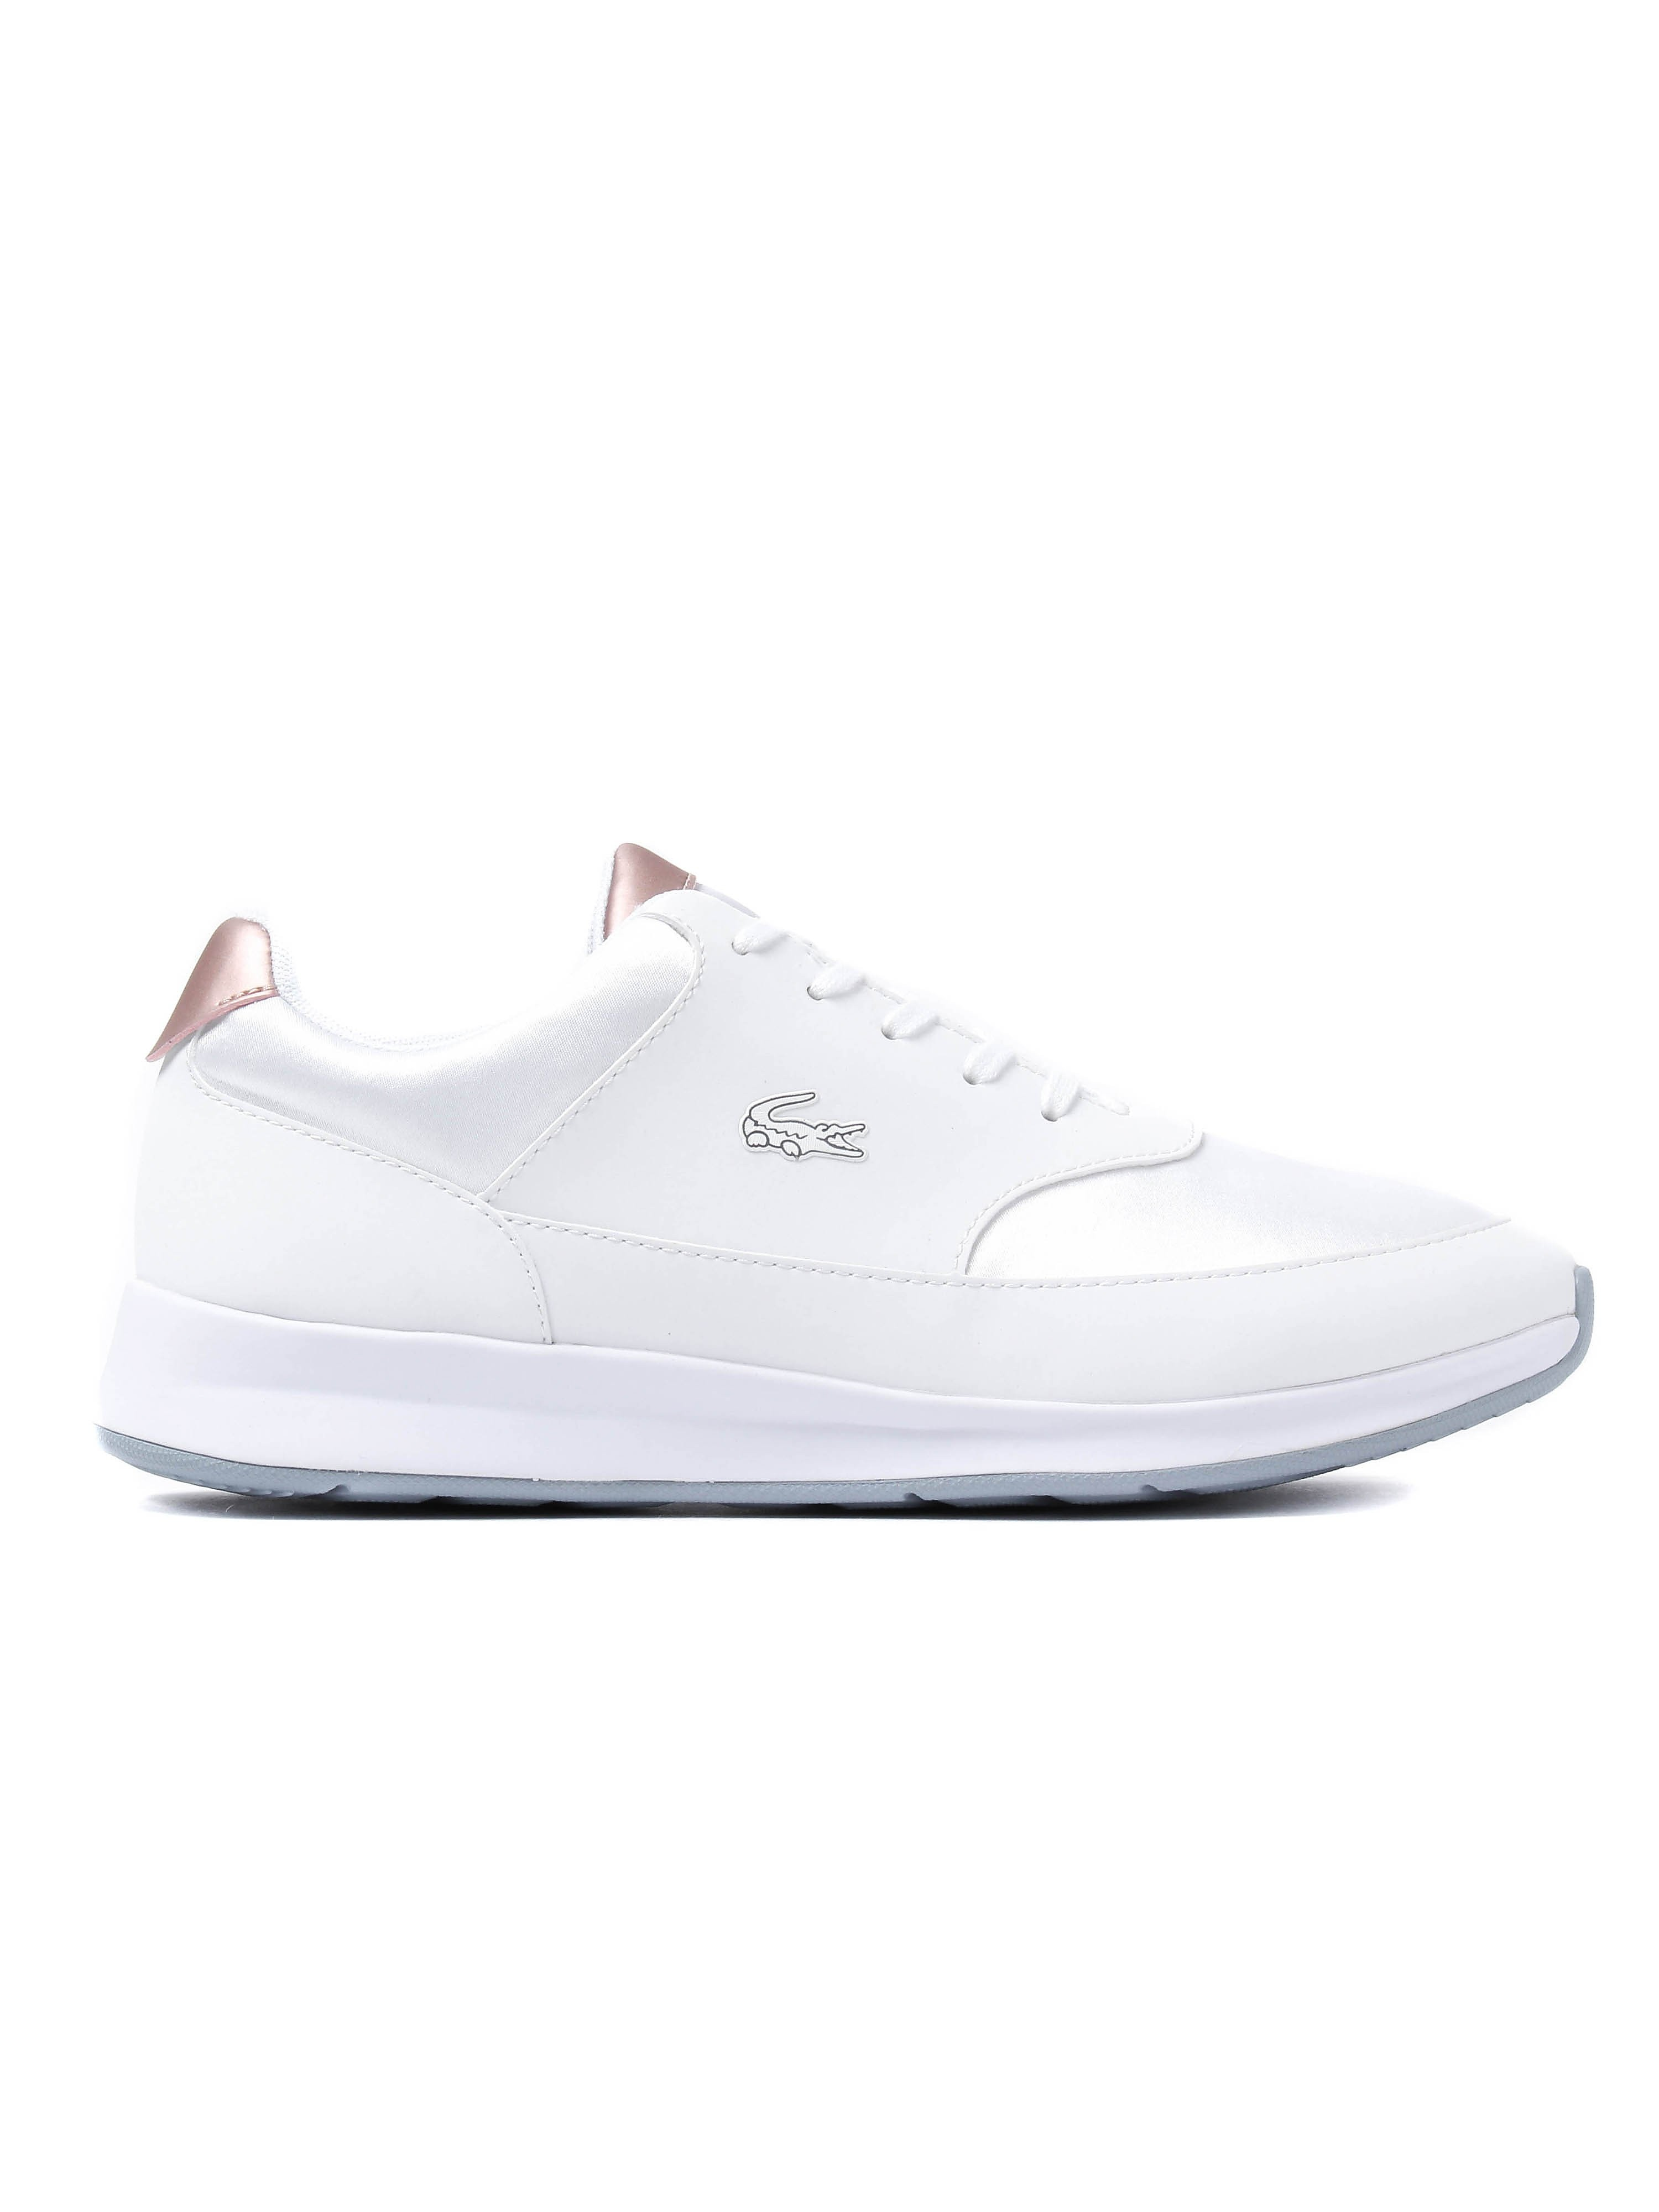 Lacoste Women's Chaumont 317 Trainers - White